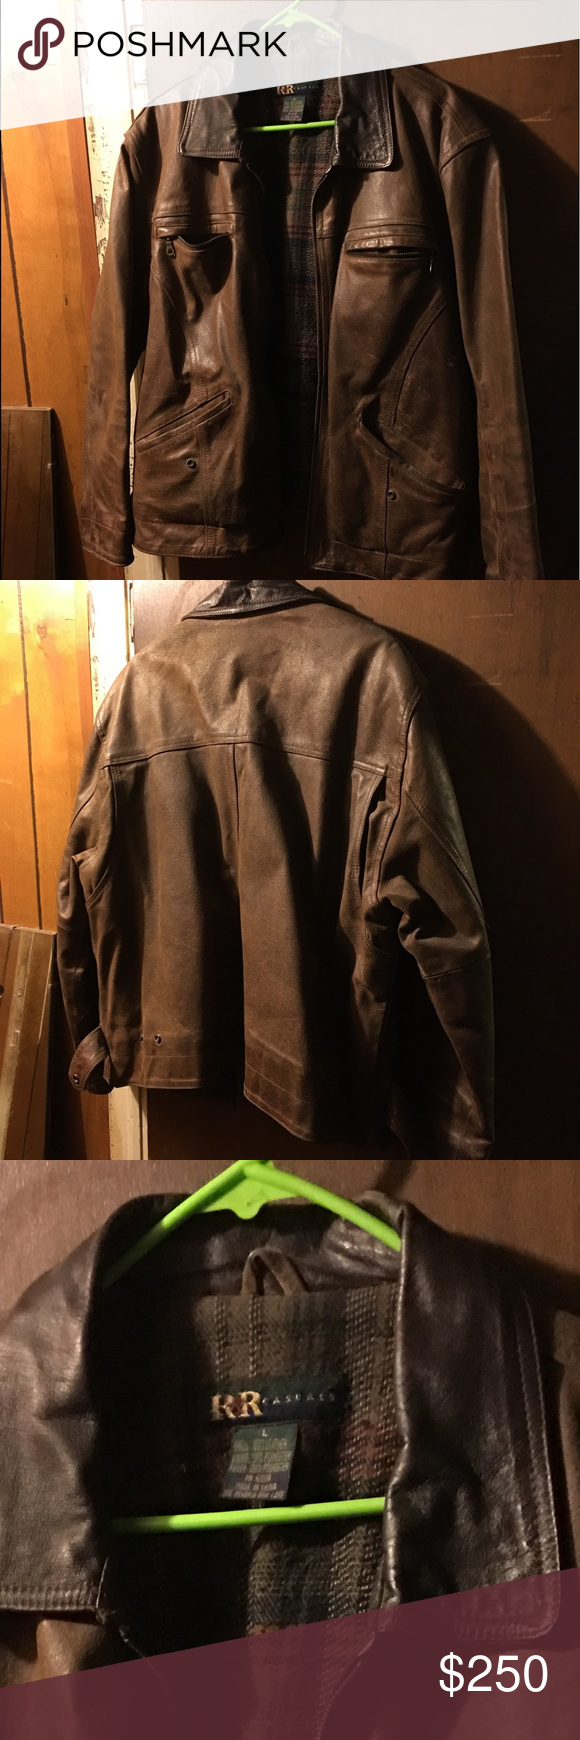 Leather jacket. Great condition! Large. Leather jacket in